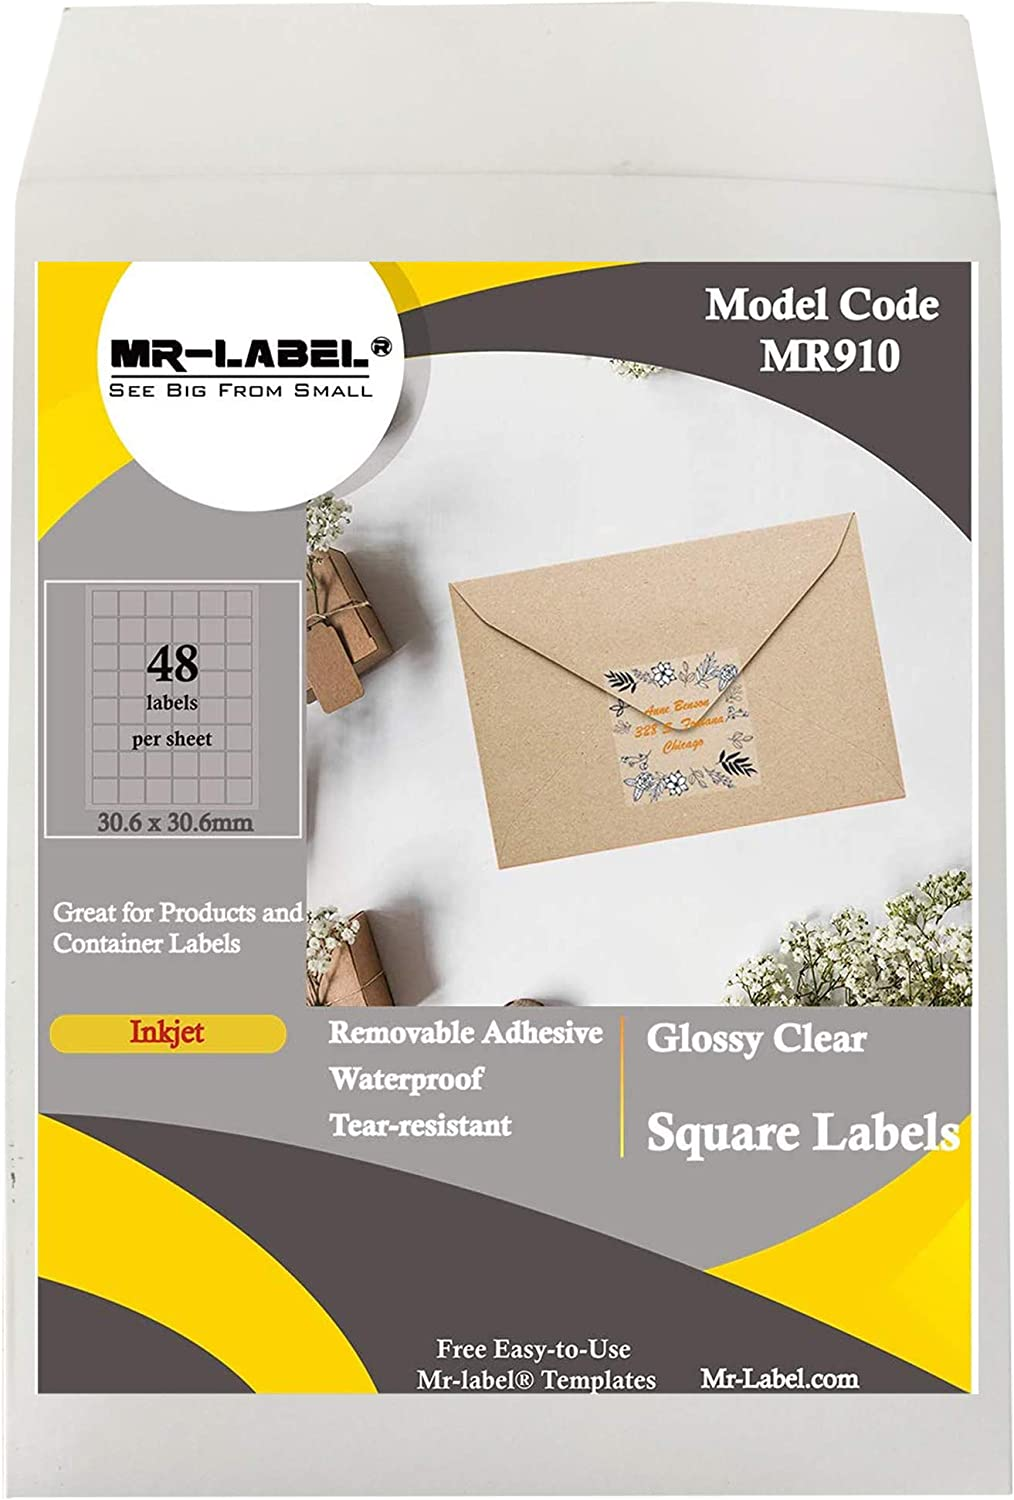 Mr-Label 30.6 mm Glossy Clear Square Labels for Inkjet Printer - Removable Self-Adhesive - Waterproof and Tear-Resistant - 48 Labels per Sheet (10)